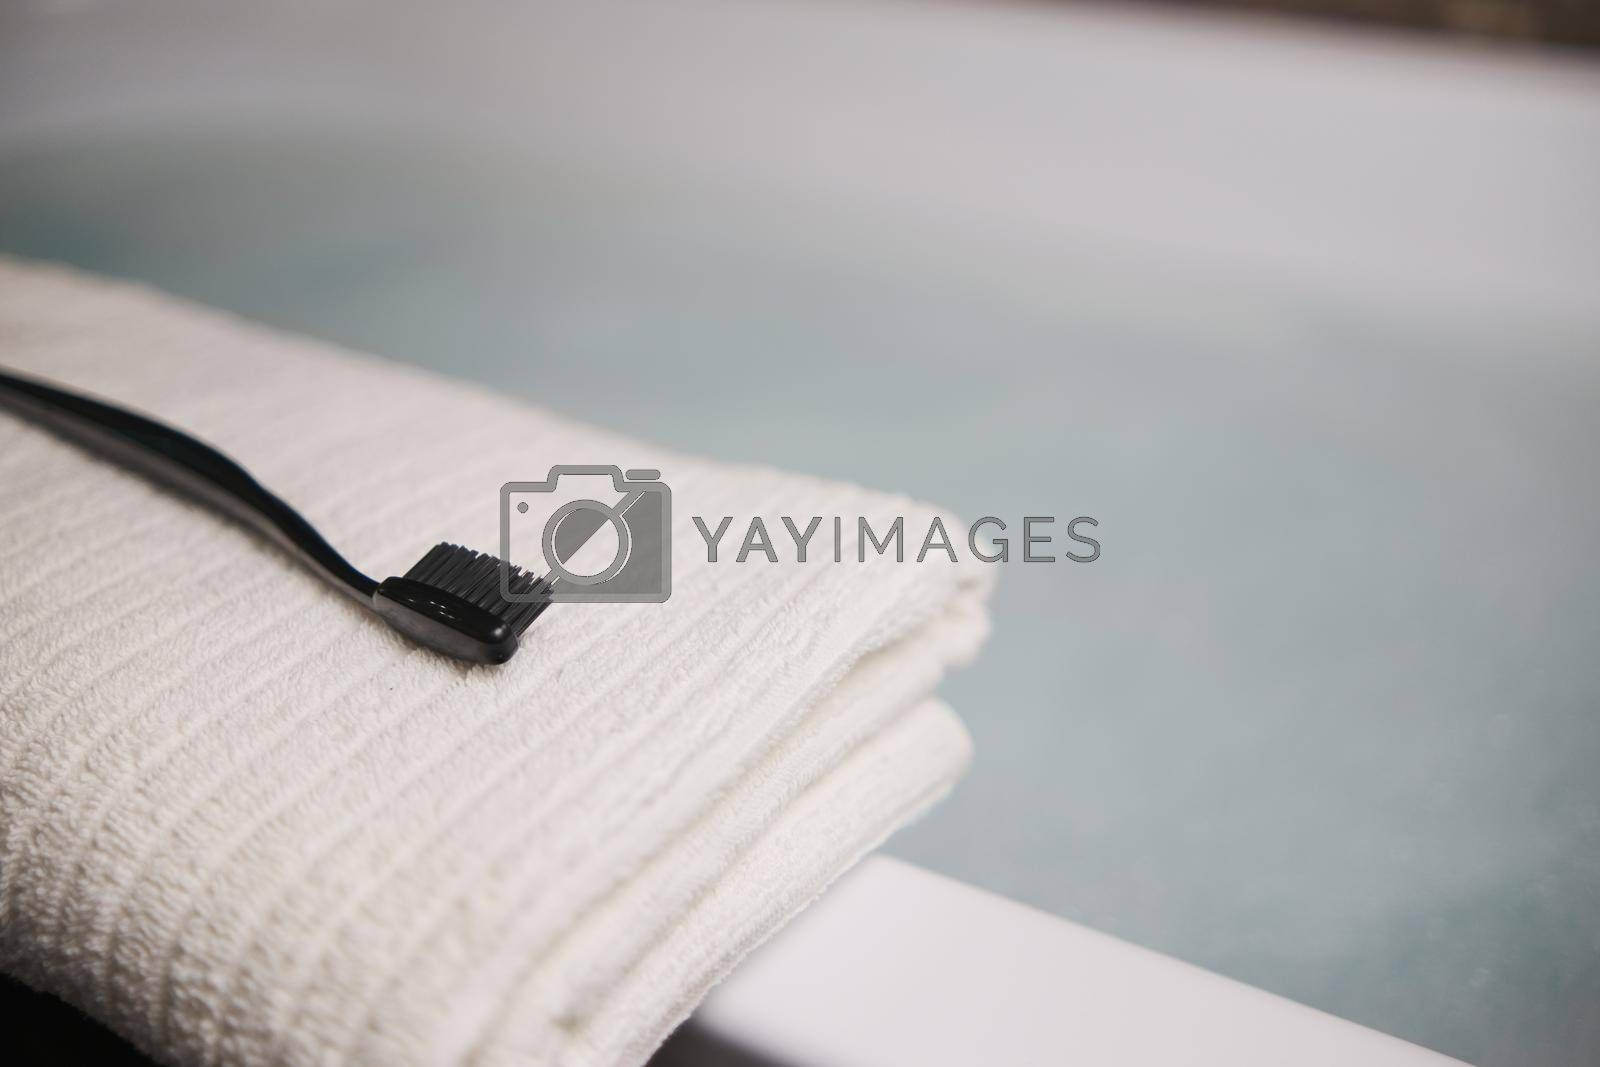 A black toothbrush on a white towel in the bathroom. Blurred background Gray Blue colors.